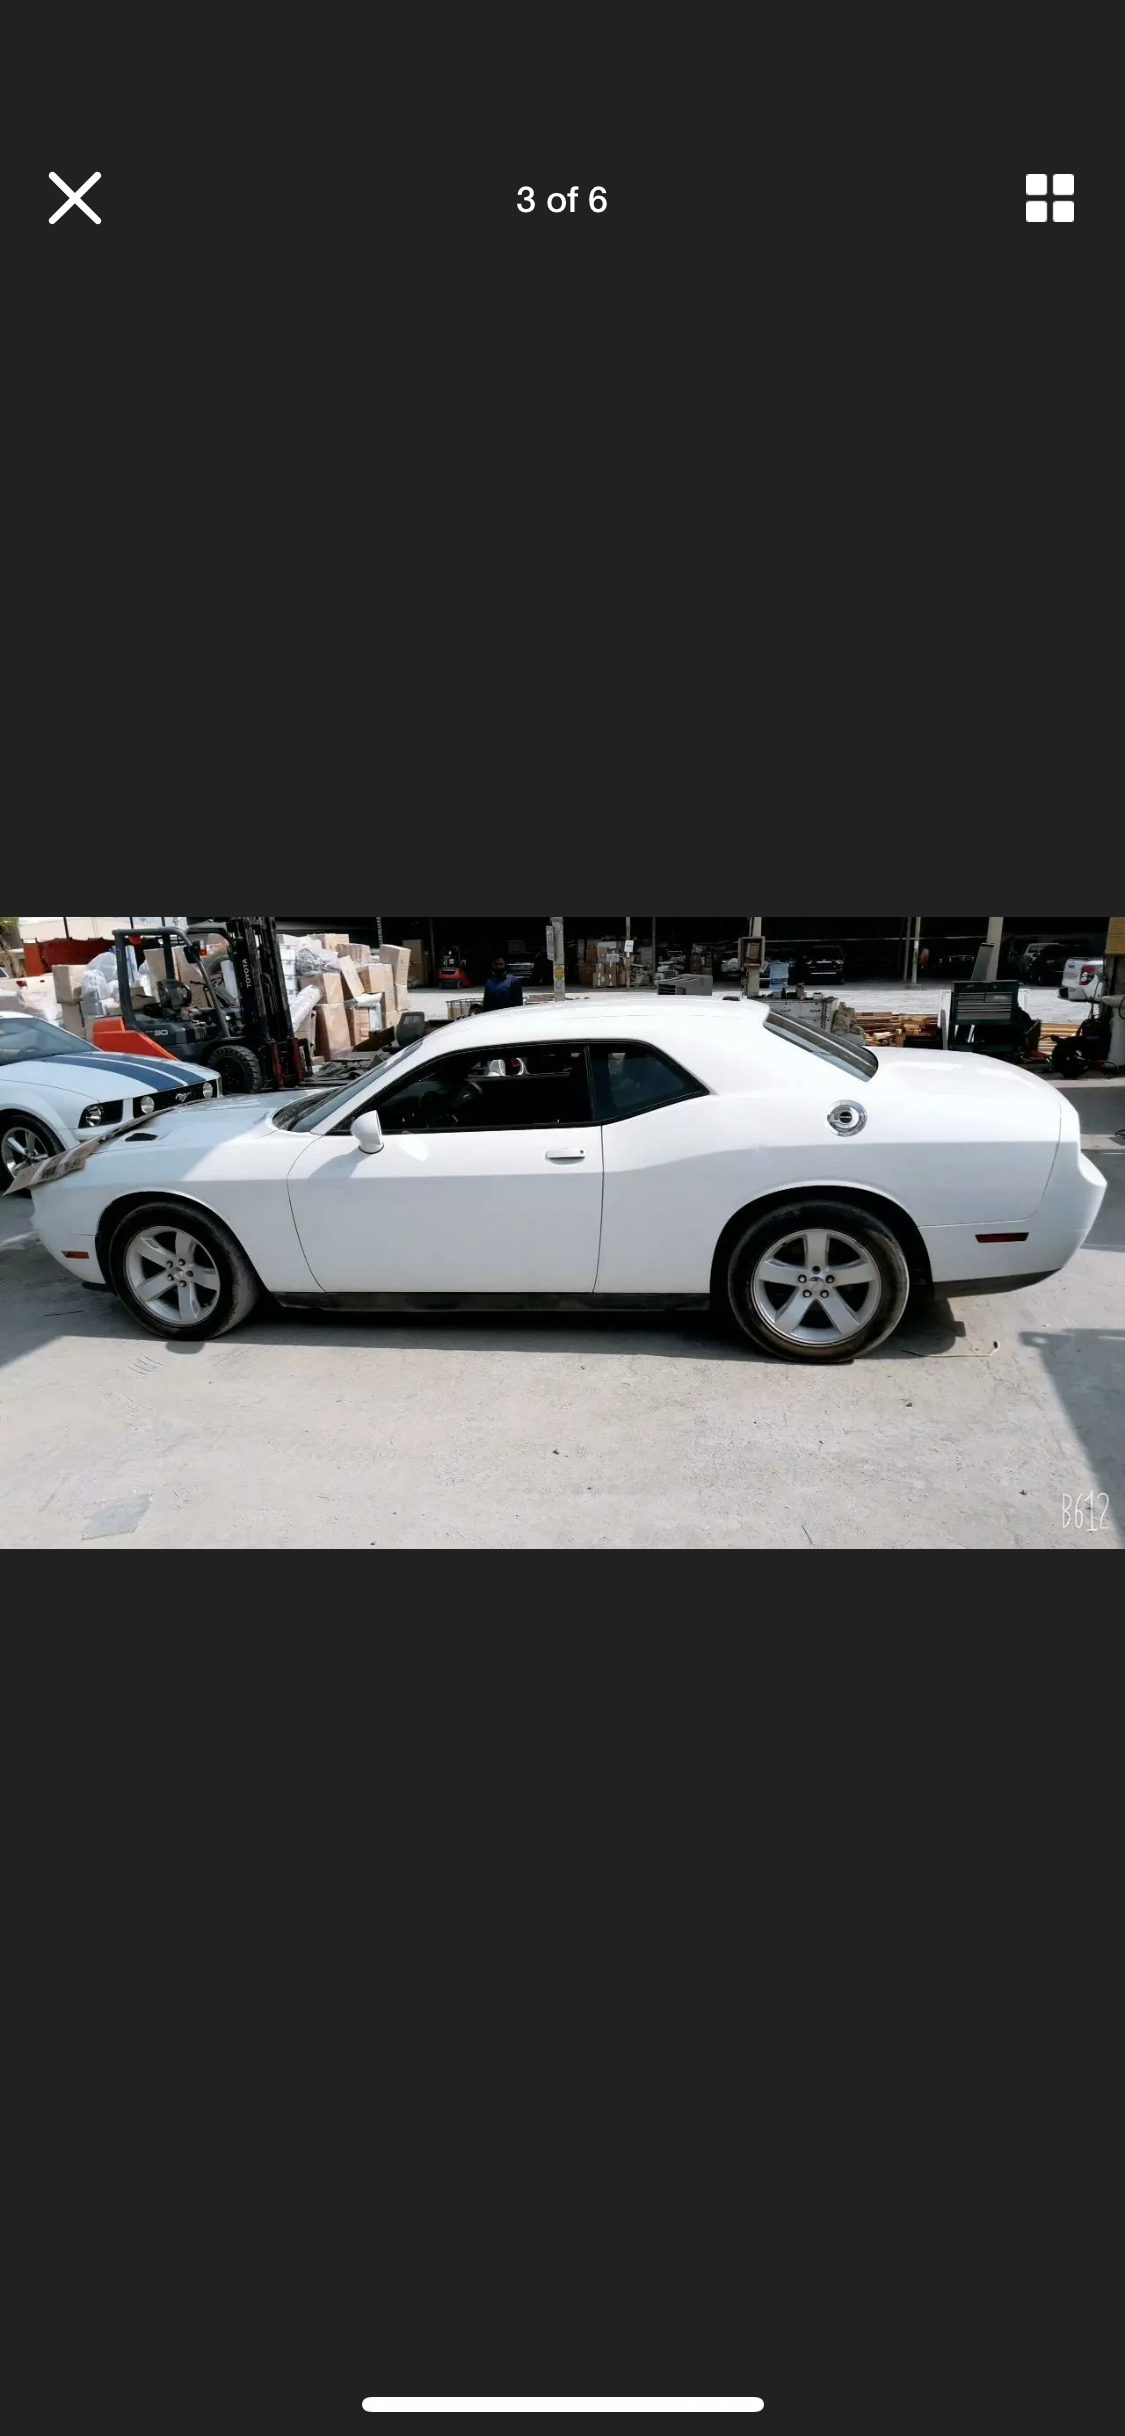 2013 DODGE CHALLENGER 3.6 AUTO NOT HEMI LHD FRESH IMPORT For Sale (picture 3 of 6)